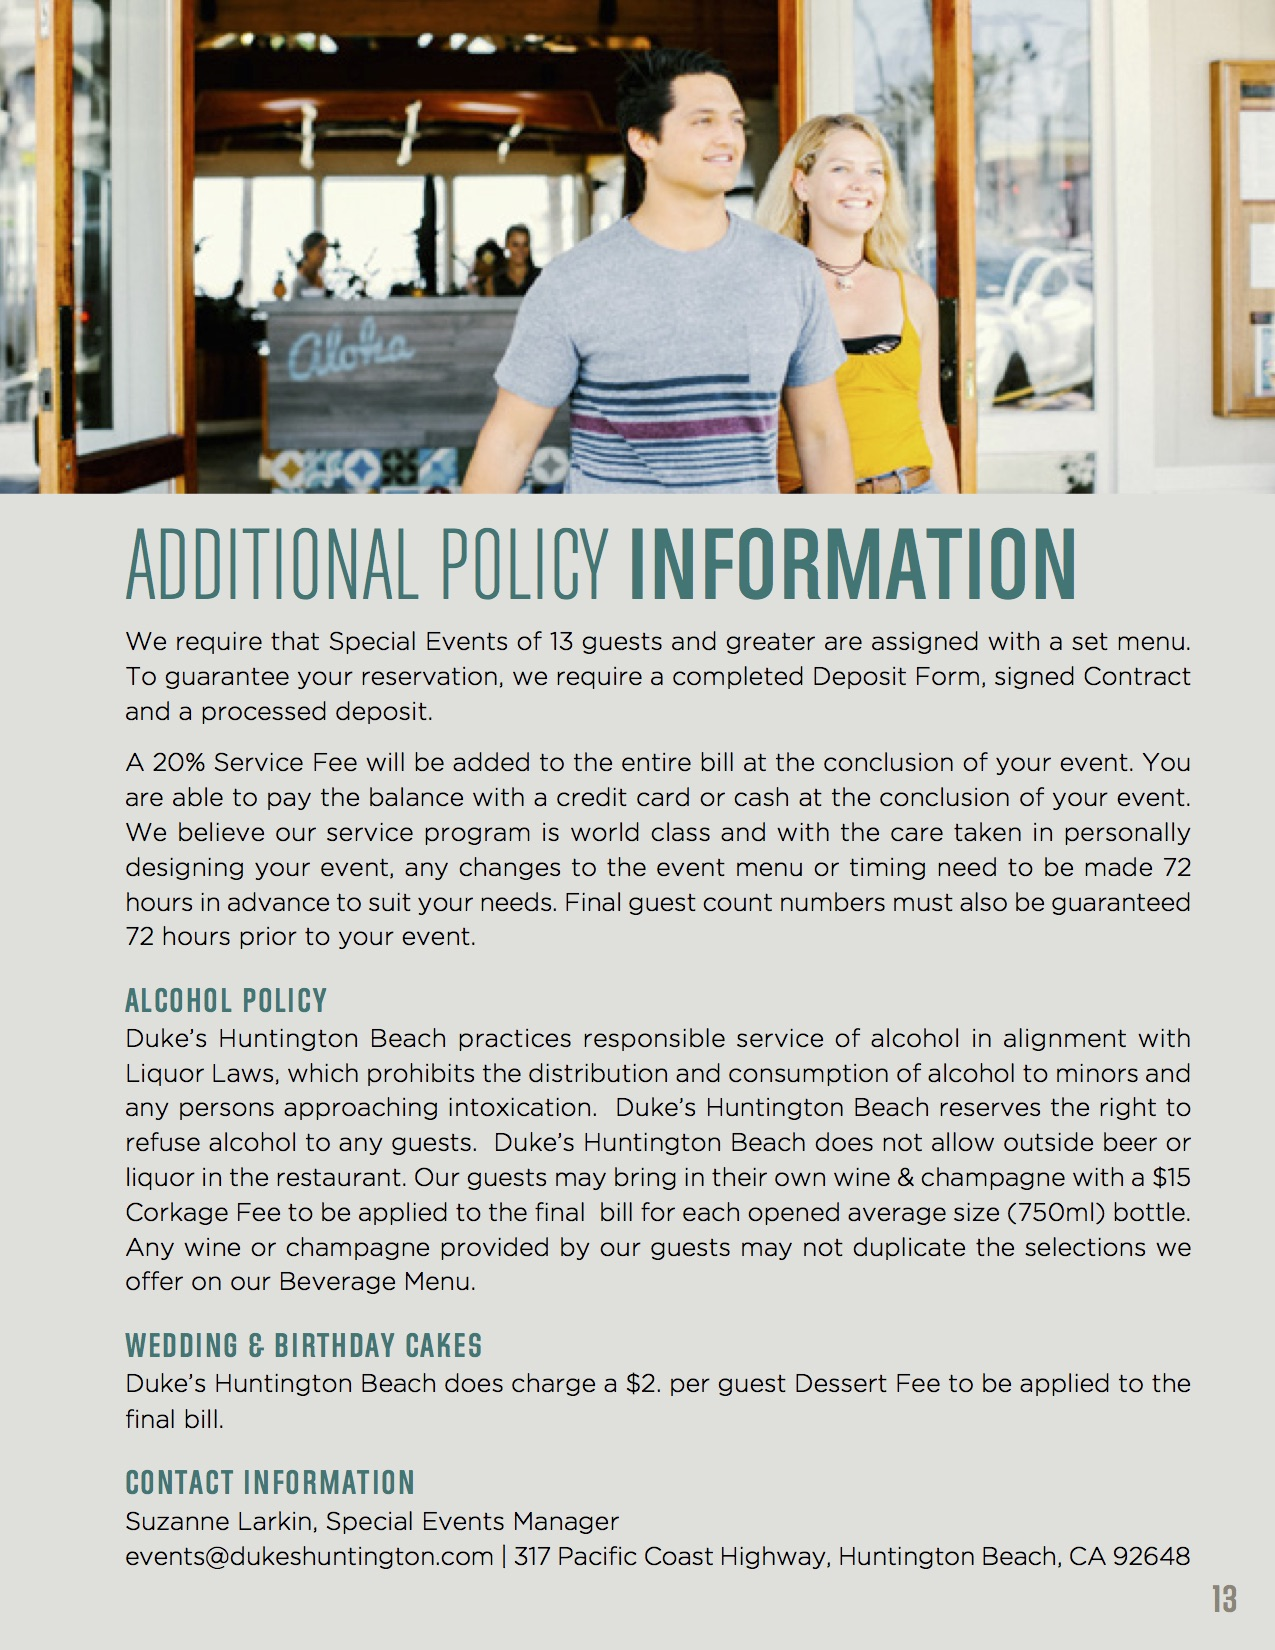 Additional Policy Information